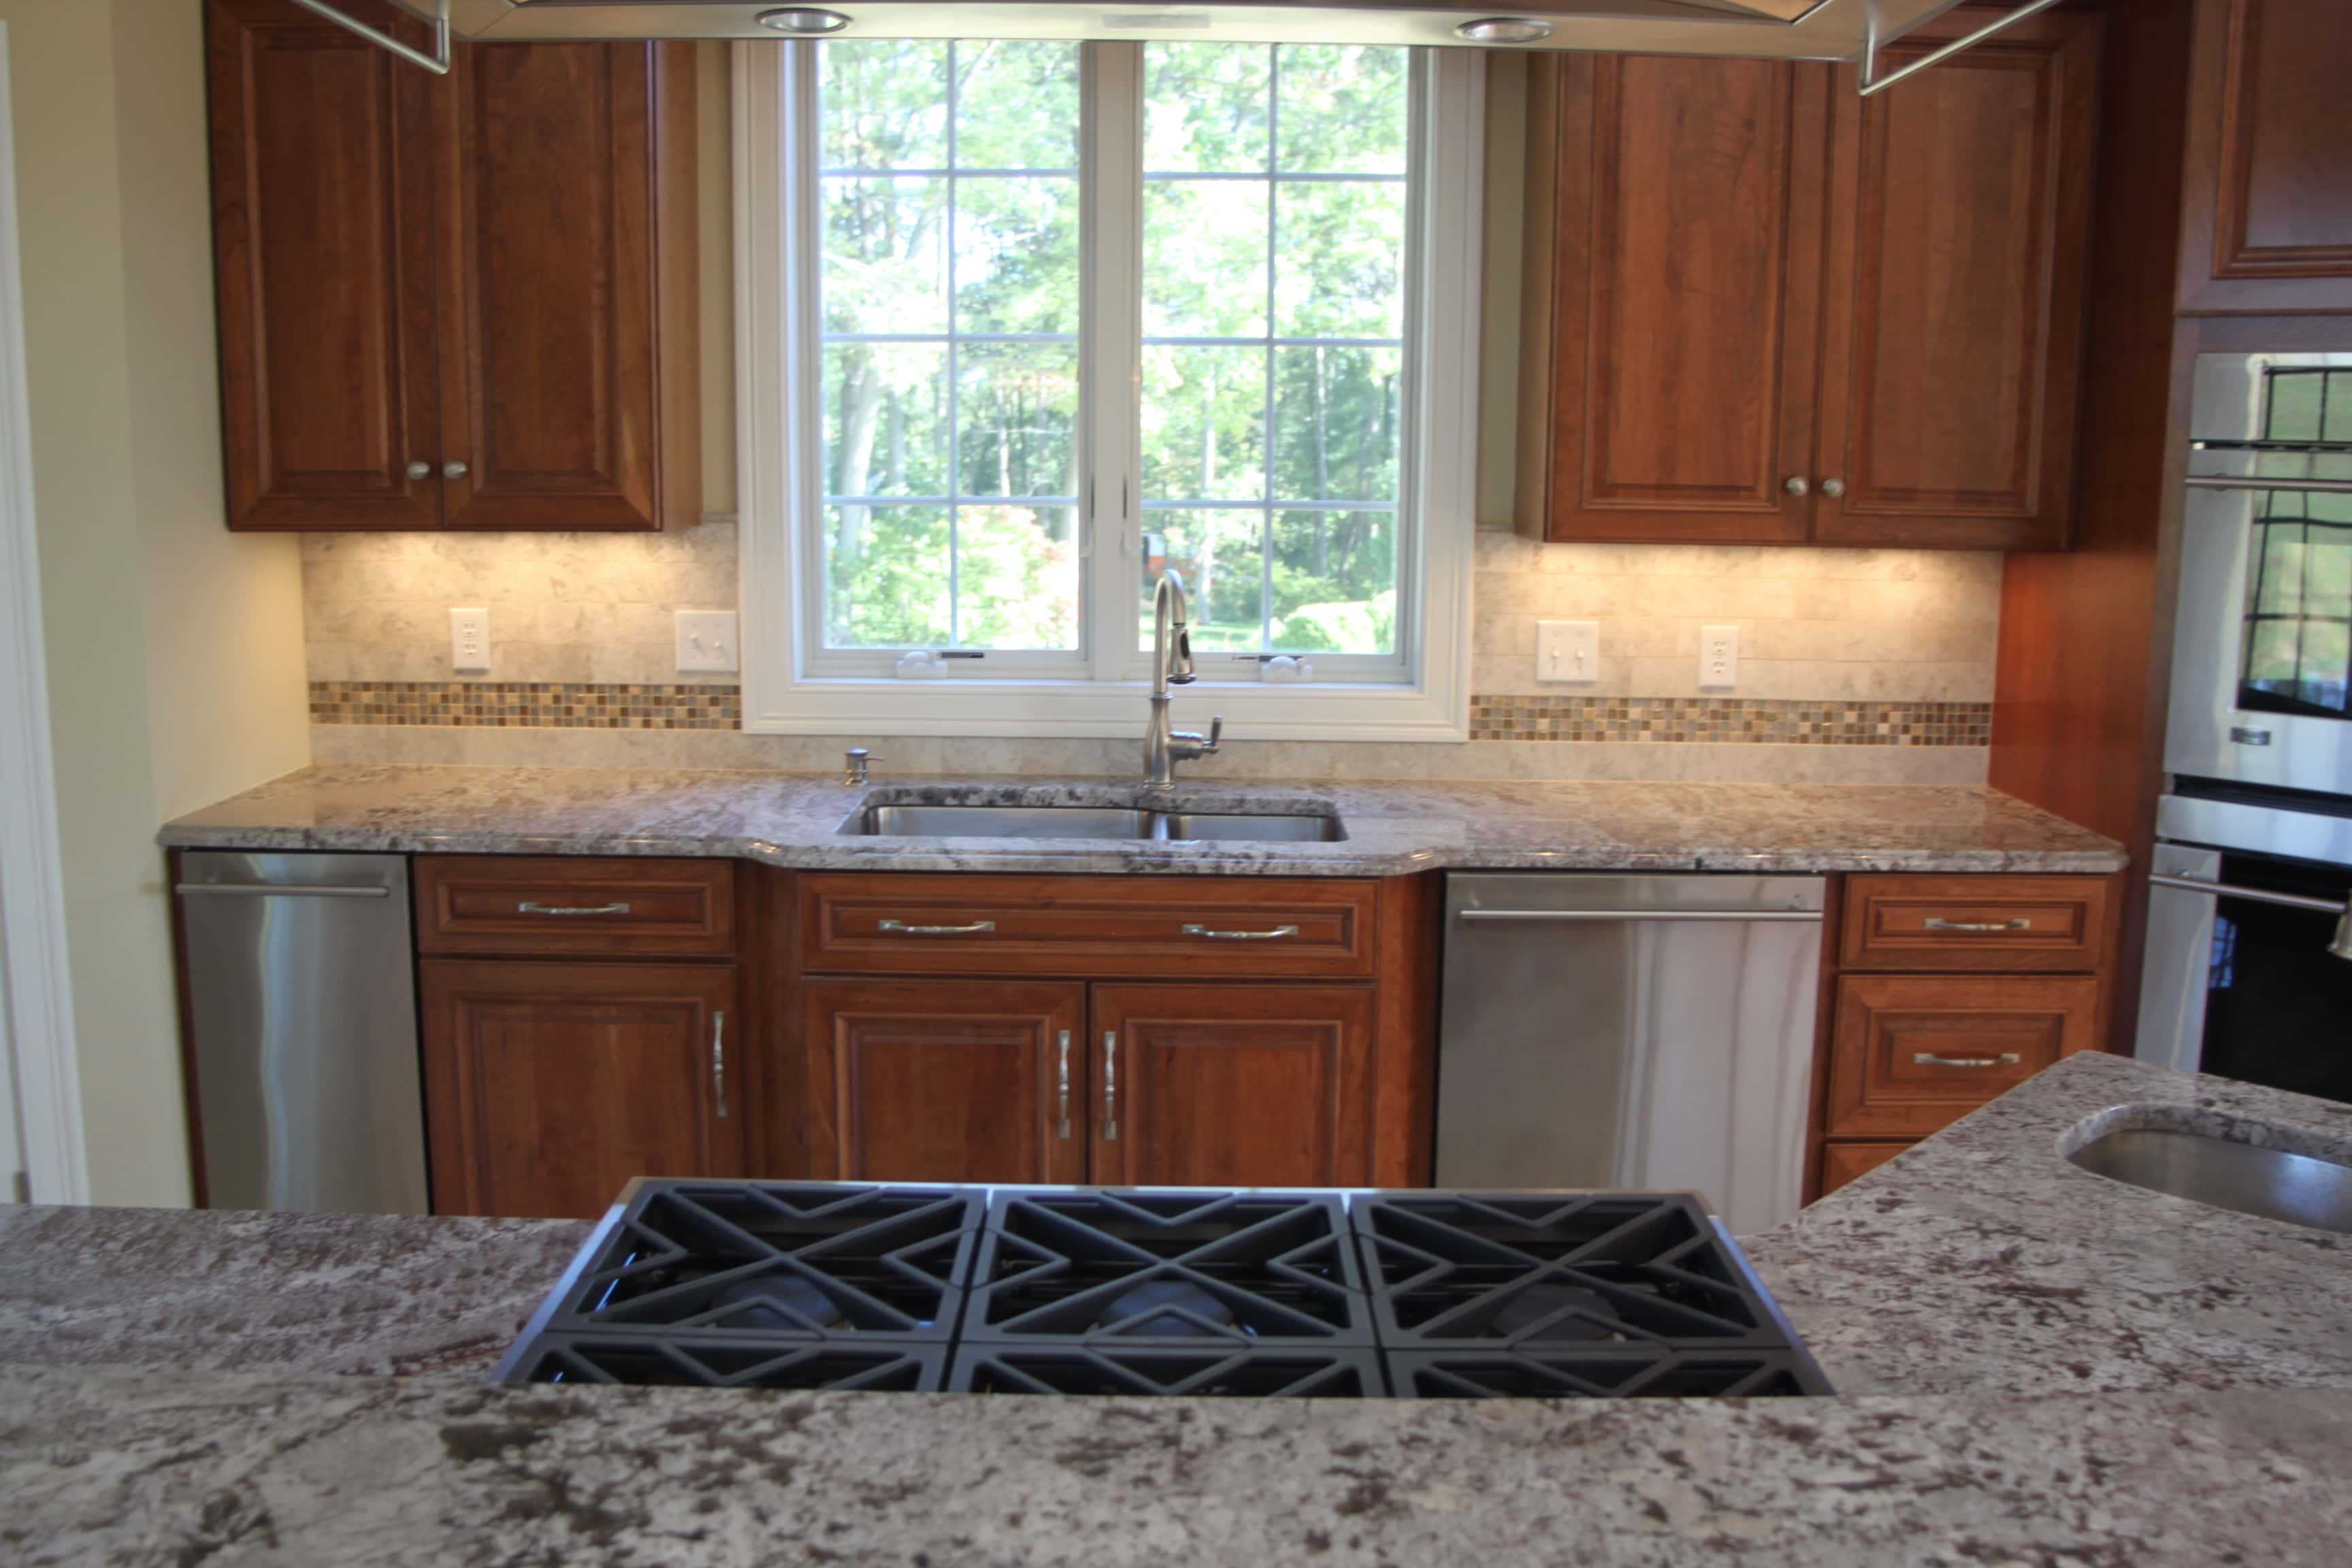 floor flooring and accessories bathroom backsplash jpeg kitchen hq wid c stone stonetile tile